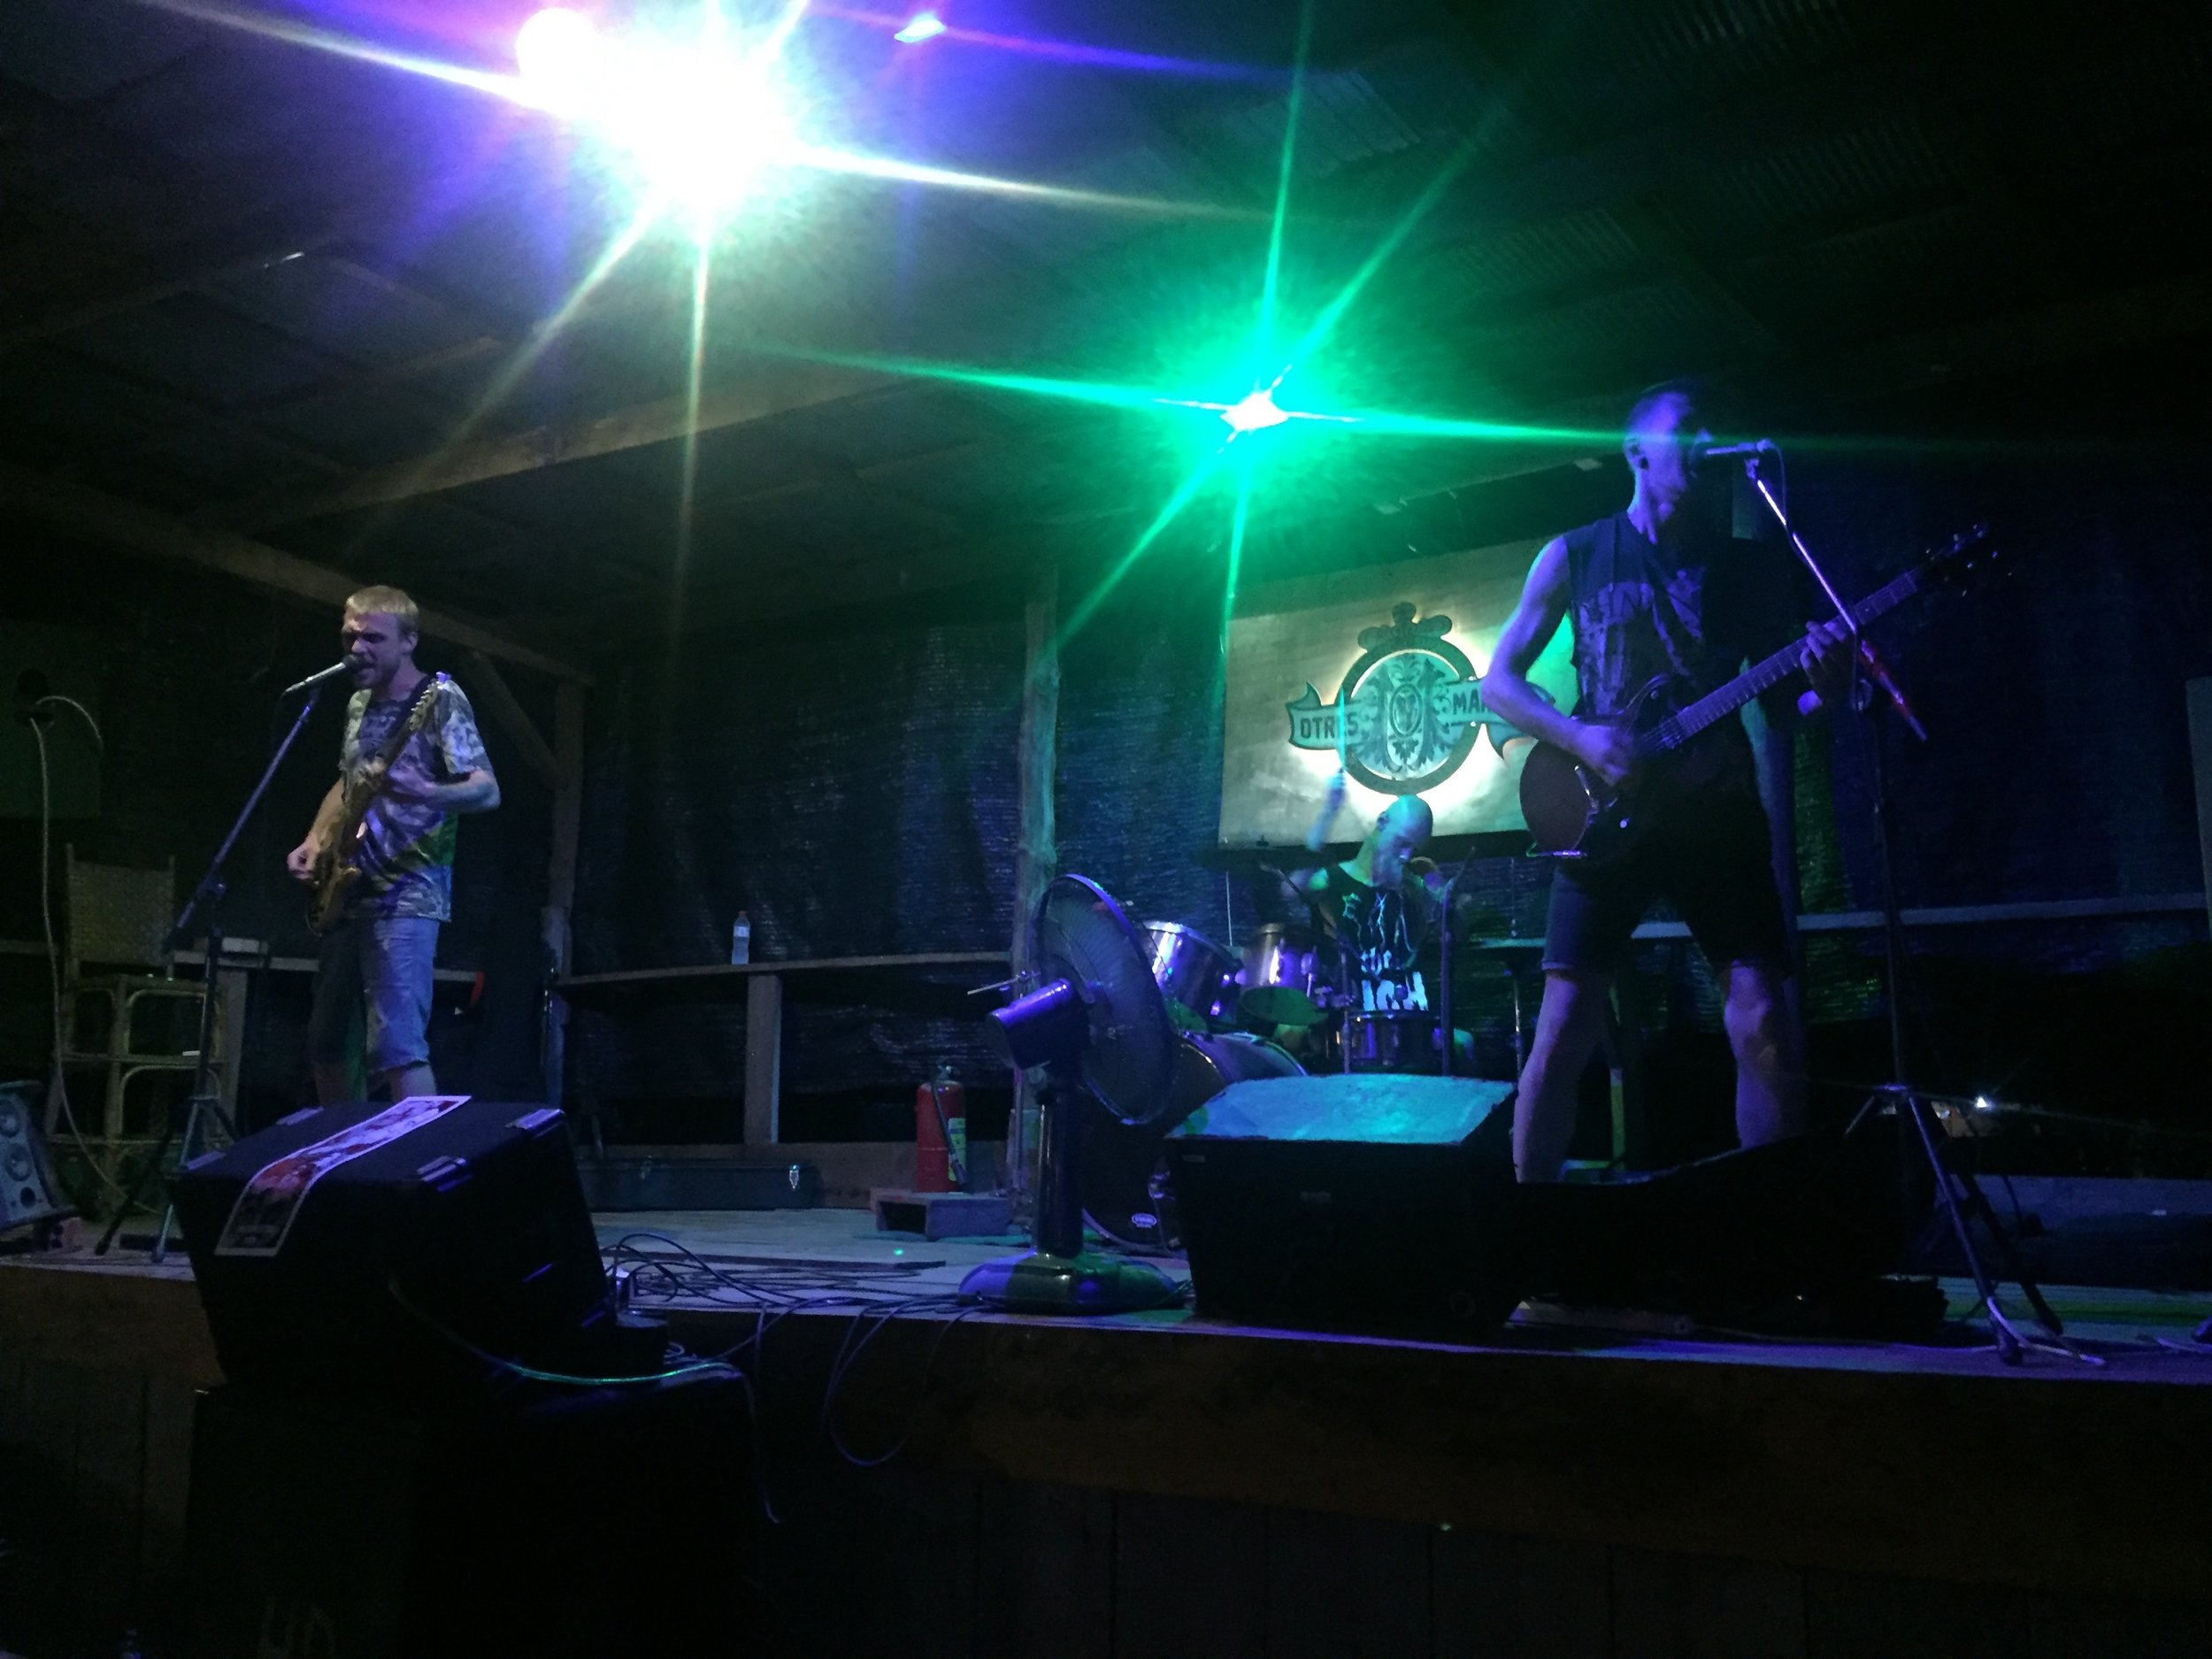 Otres Market, where they have good live music. Here's a Russian metal band.